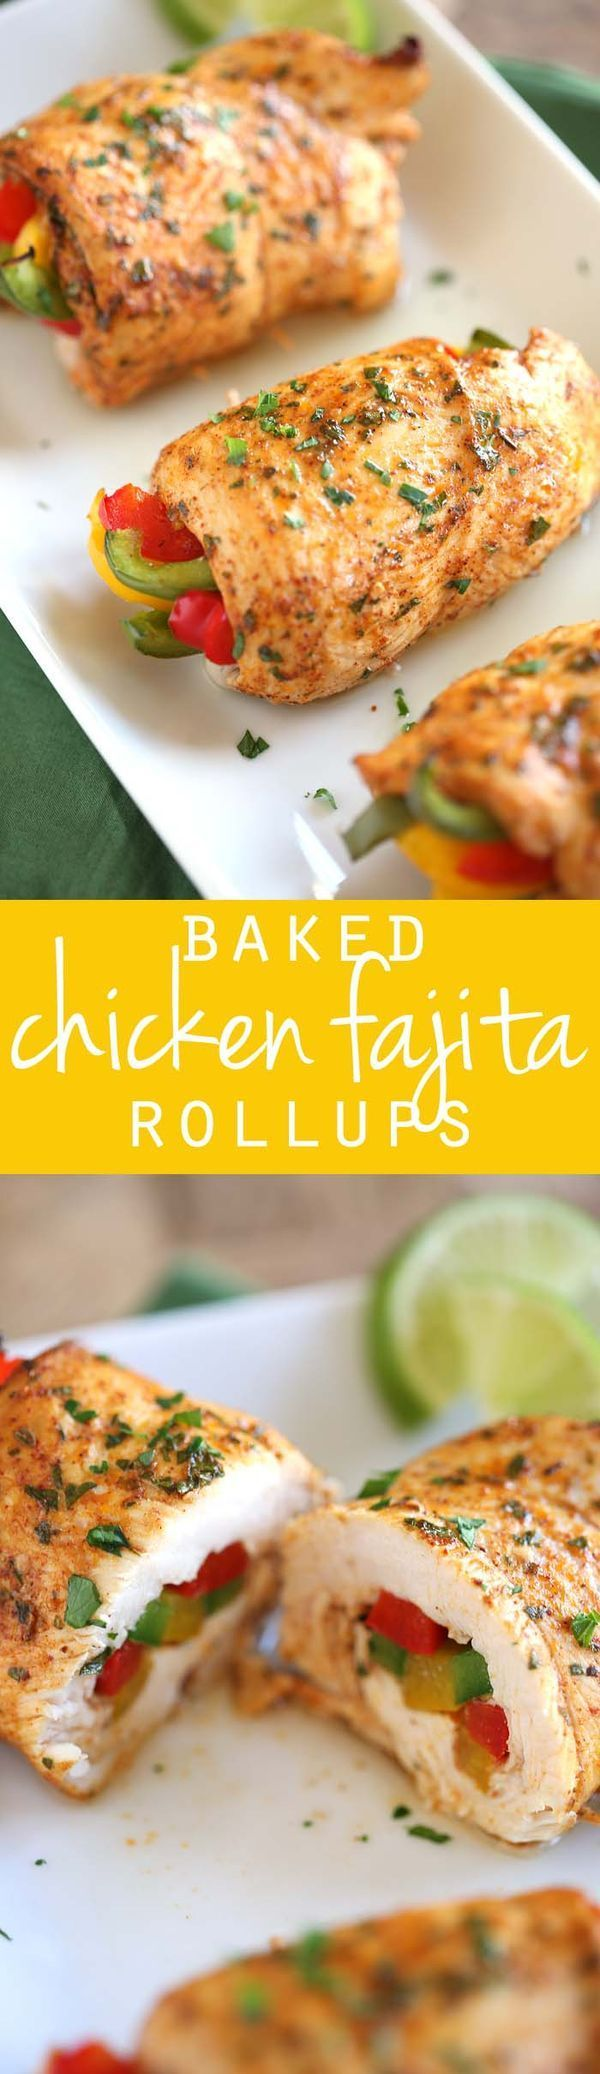 These Baked Chicken Fajita Roll-Ups are easy to make, super moist and make the perfect delicious low-carb meal! eat-yourself-skin...                                                                                                                                                                                 More